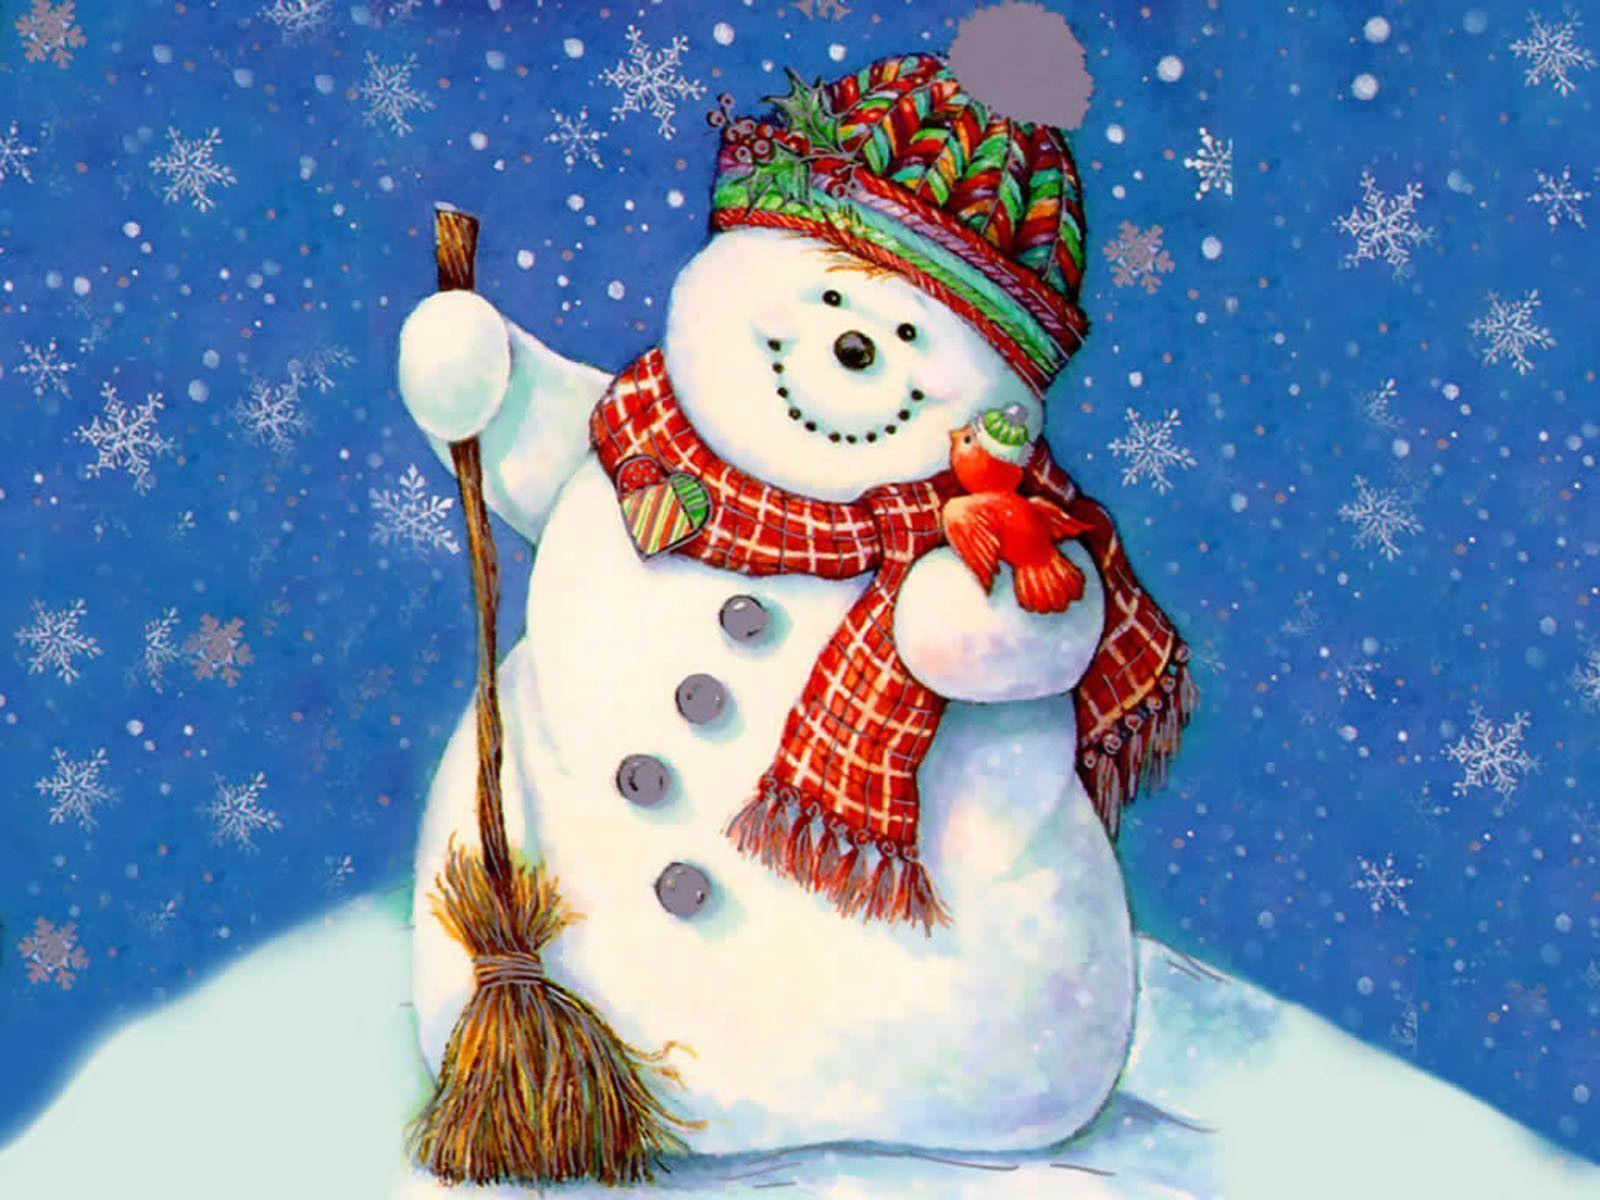 cute country snowman wallpaper - photo #25